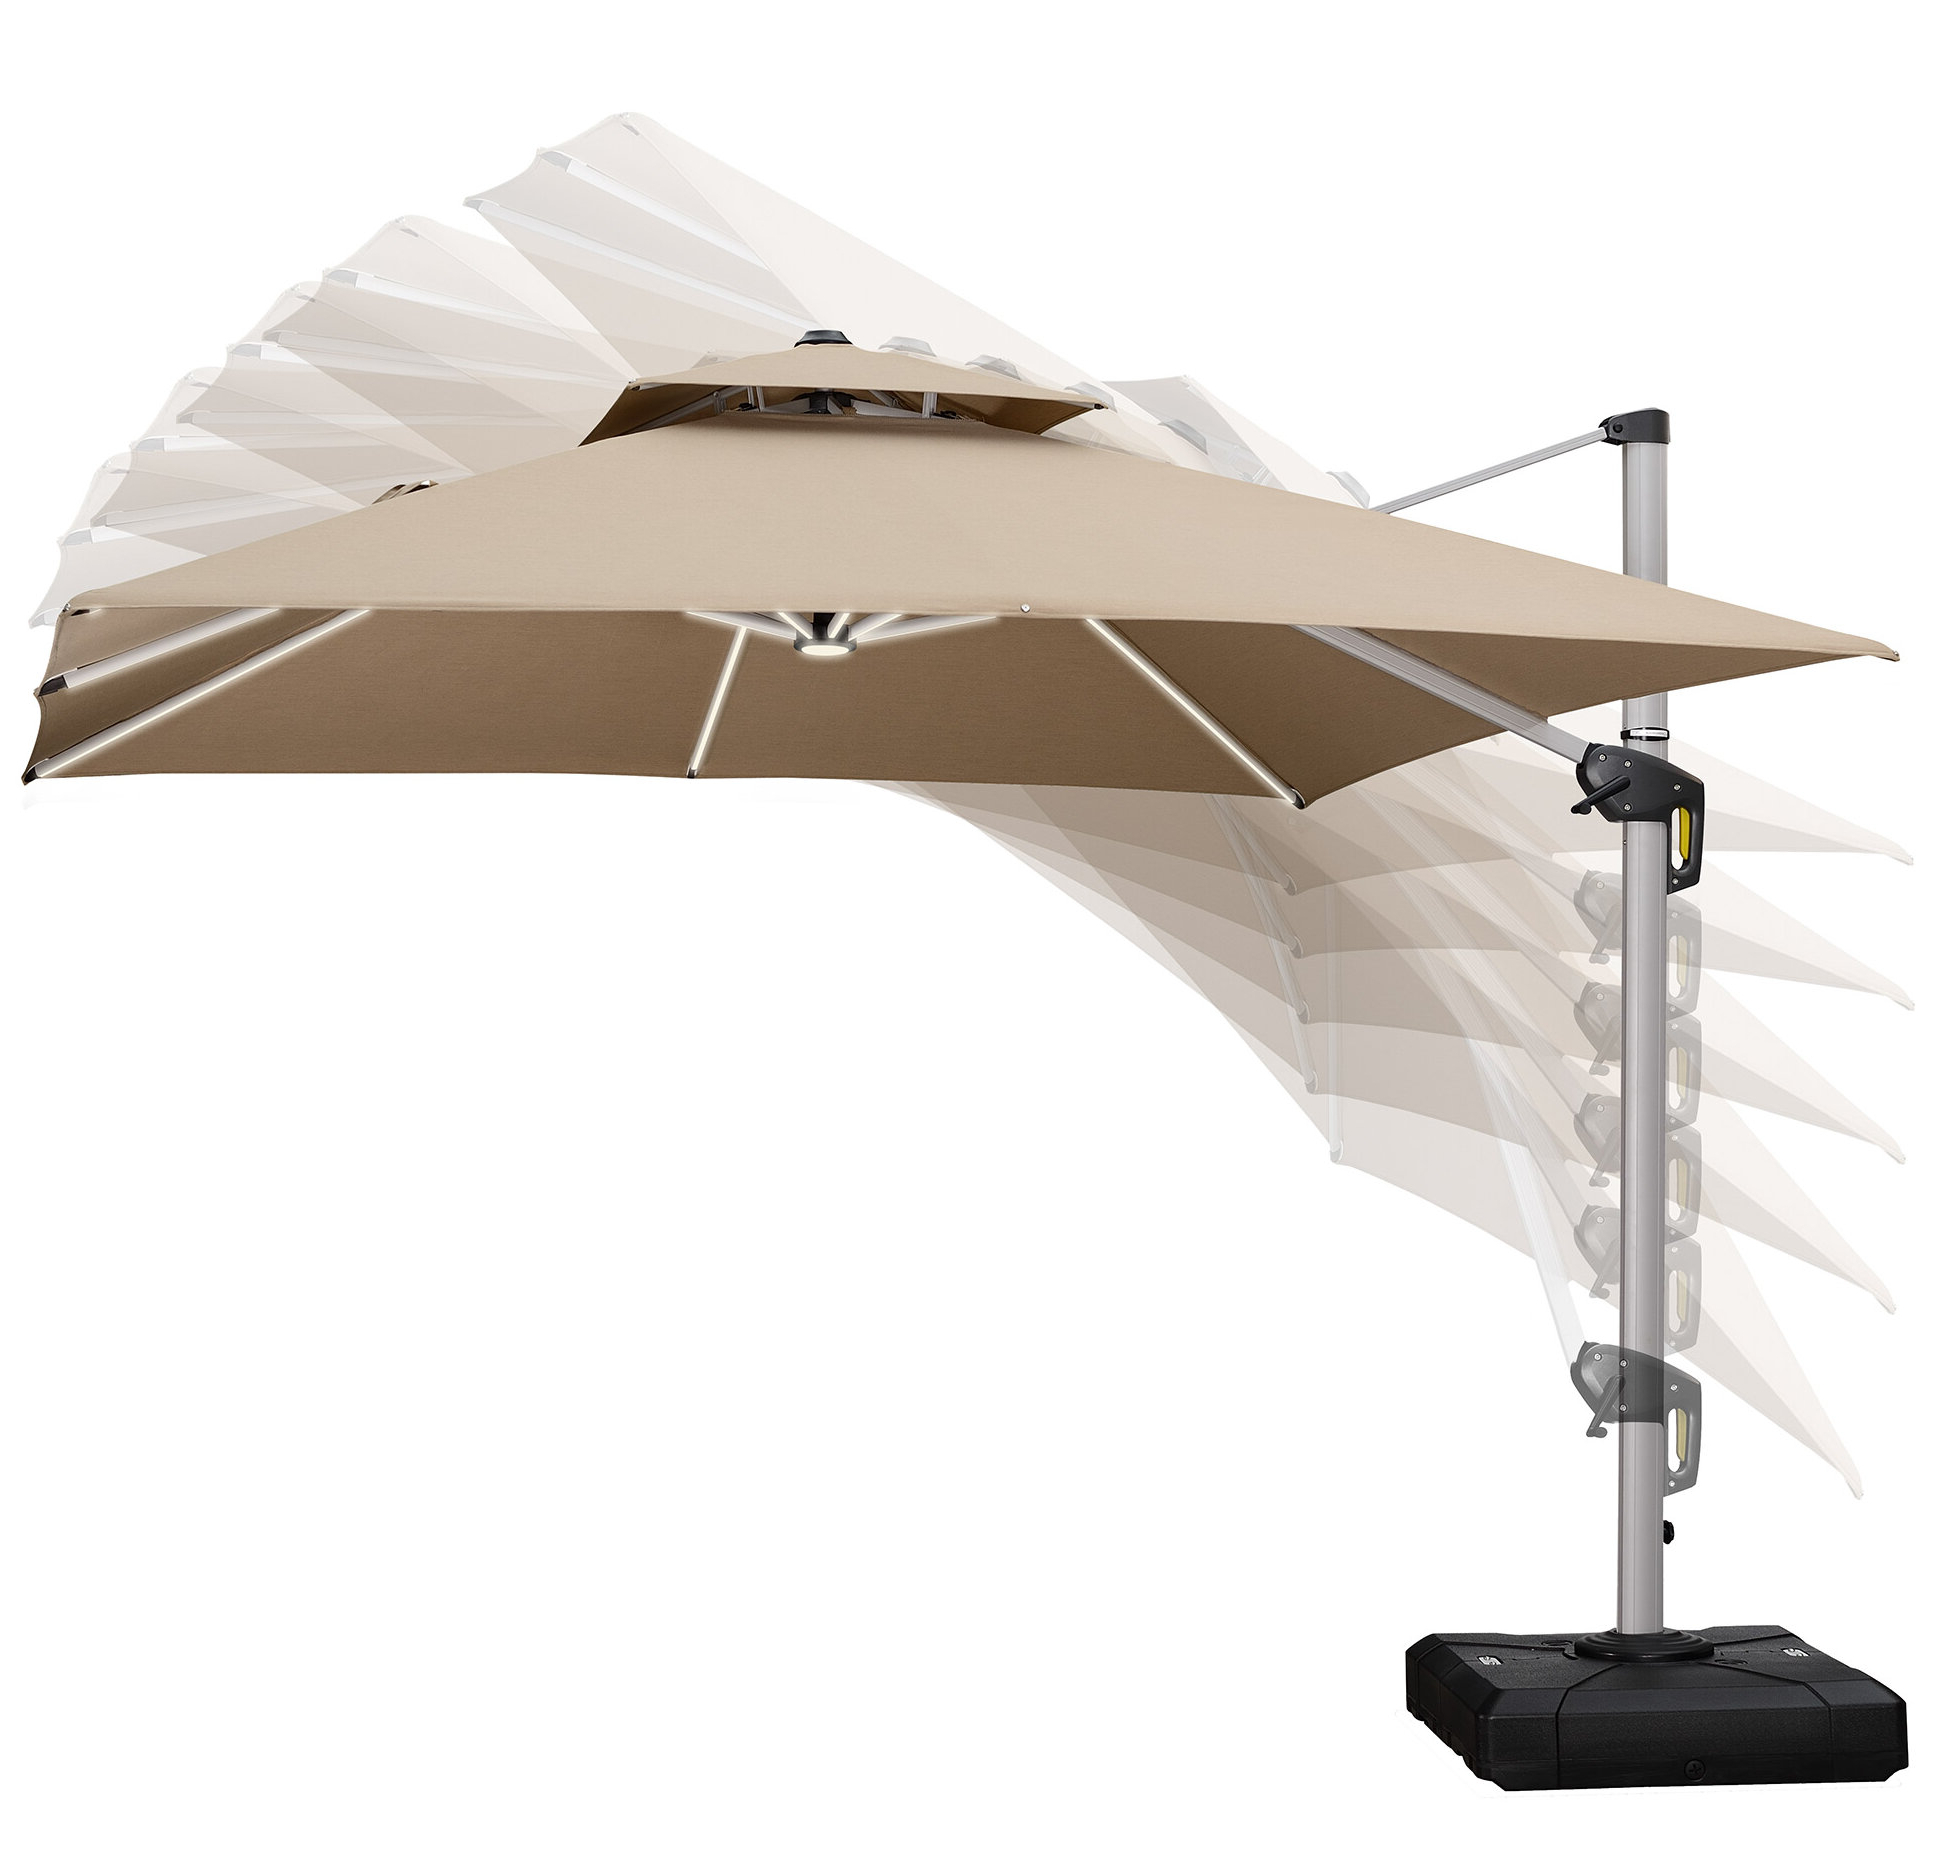 Maidste Square Cantilever Umbrellas Intended For Latest Dermott 10' Square Cantilever Umbrella (View 4 of 20)